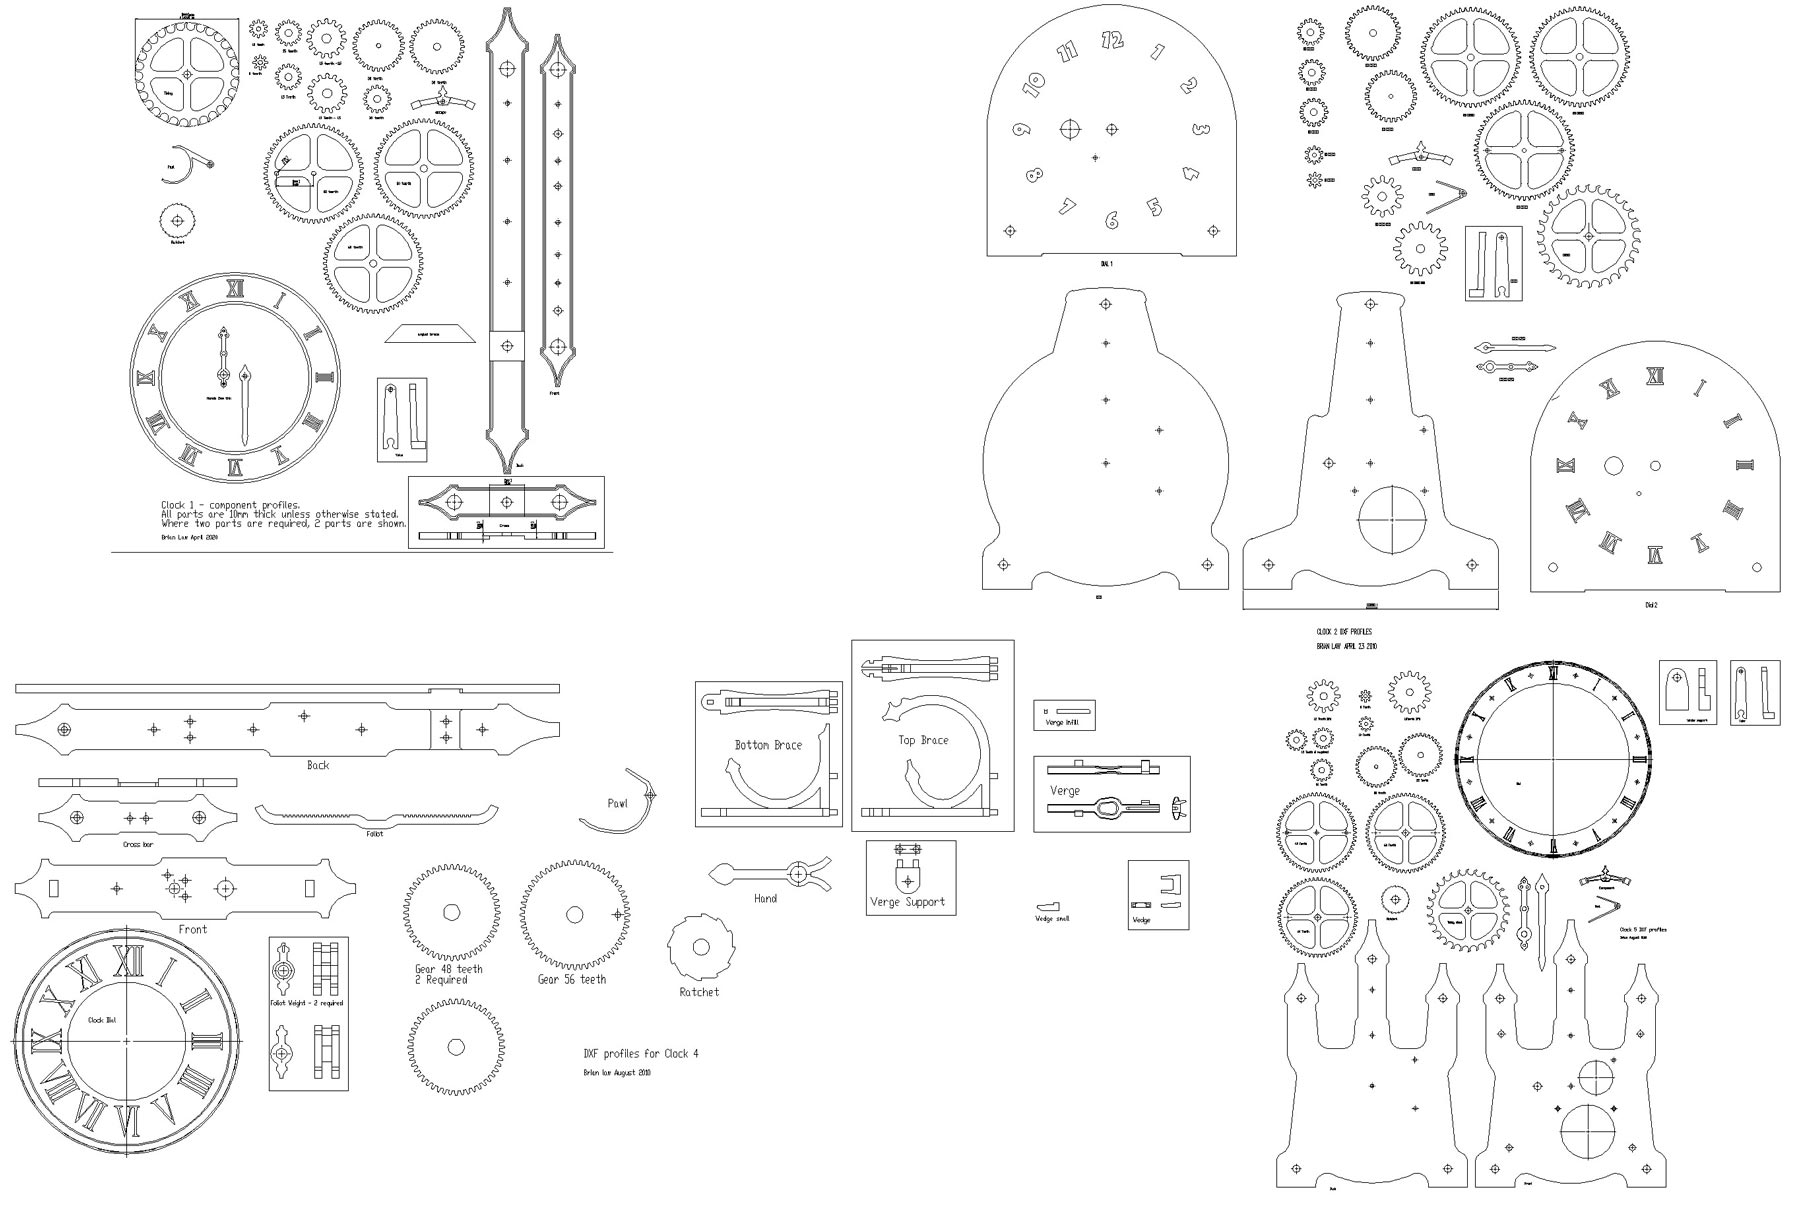 Horse bench plans drawing at getdrawings free for personal use 1800x1205 how to make a wooden gear clock wooden clock plans wooden gear malvernweather Image collections